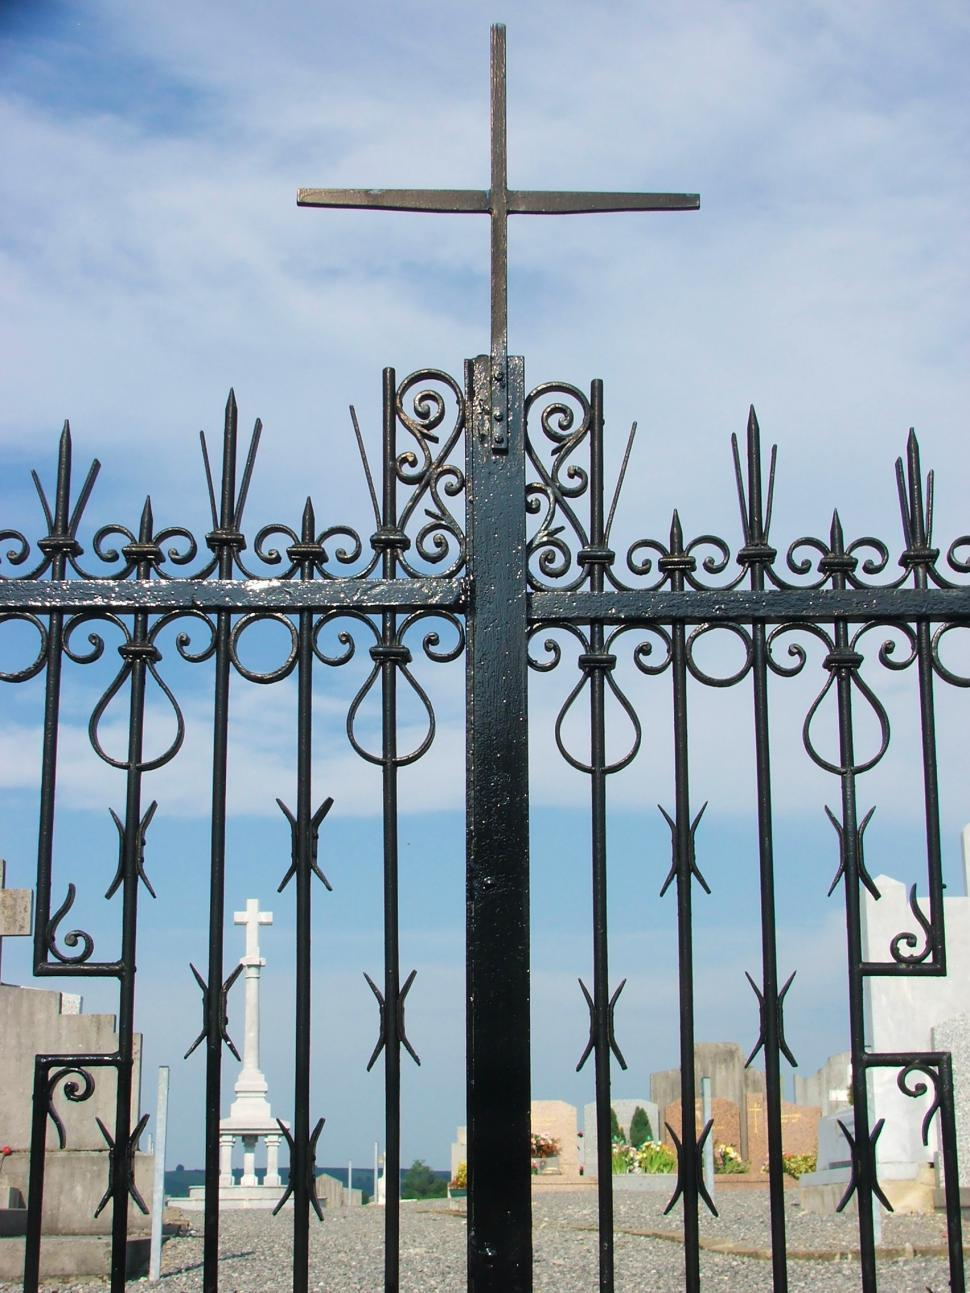 Download Free Stock HD Photo of Cemetery gate Online